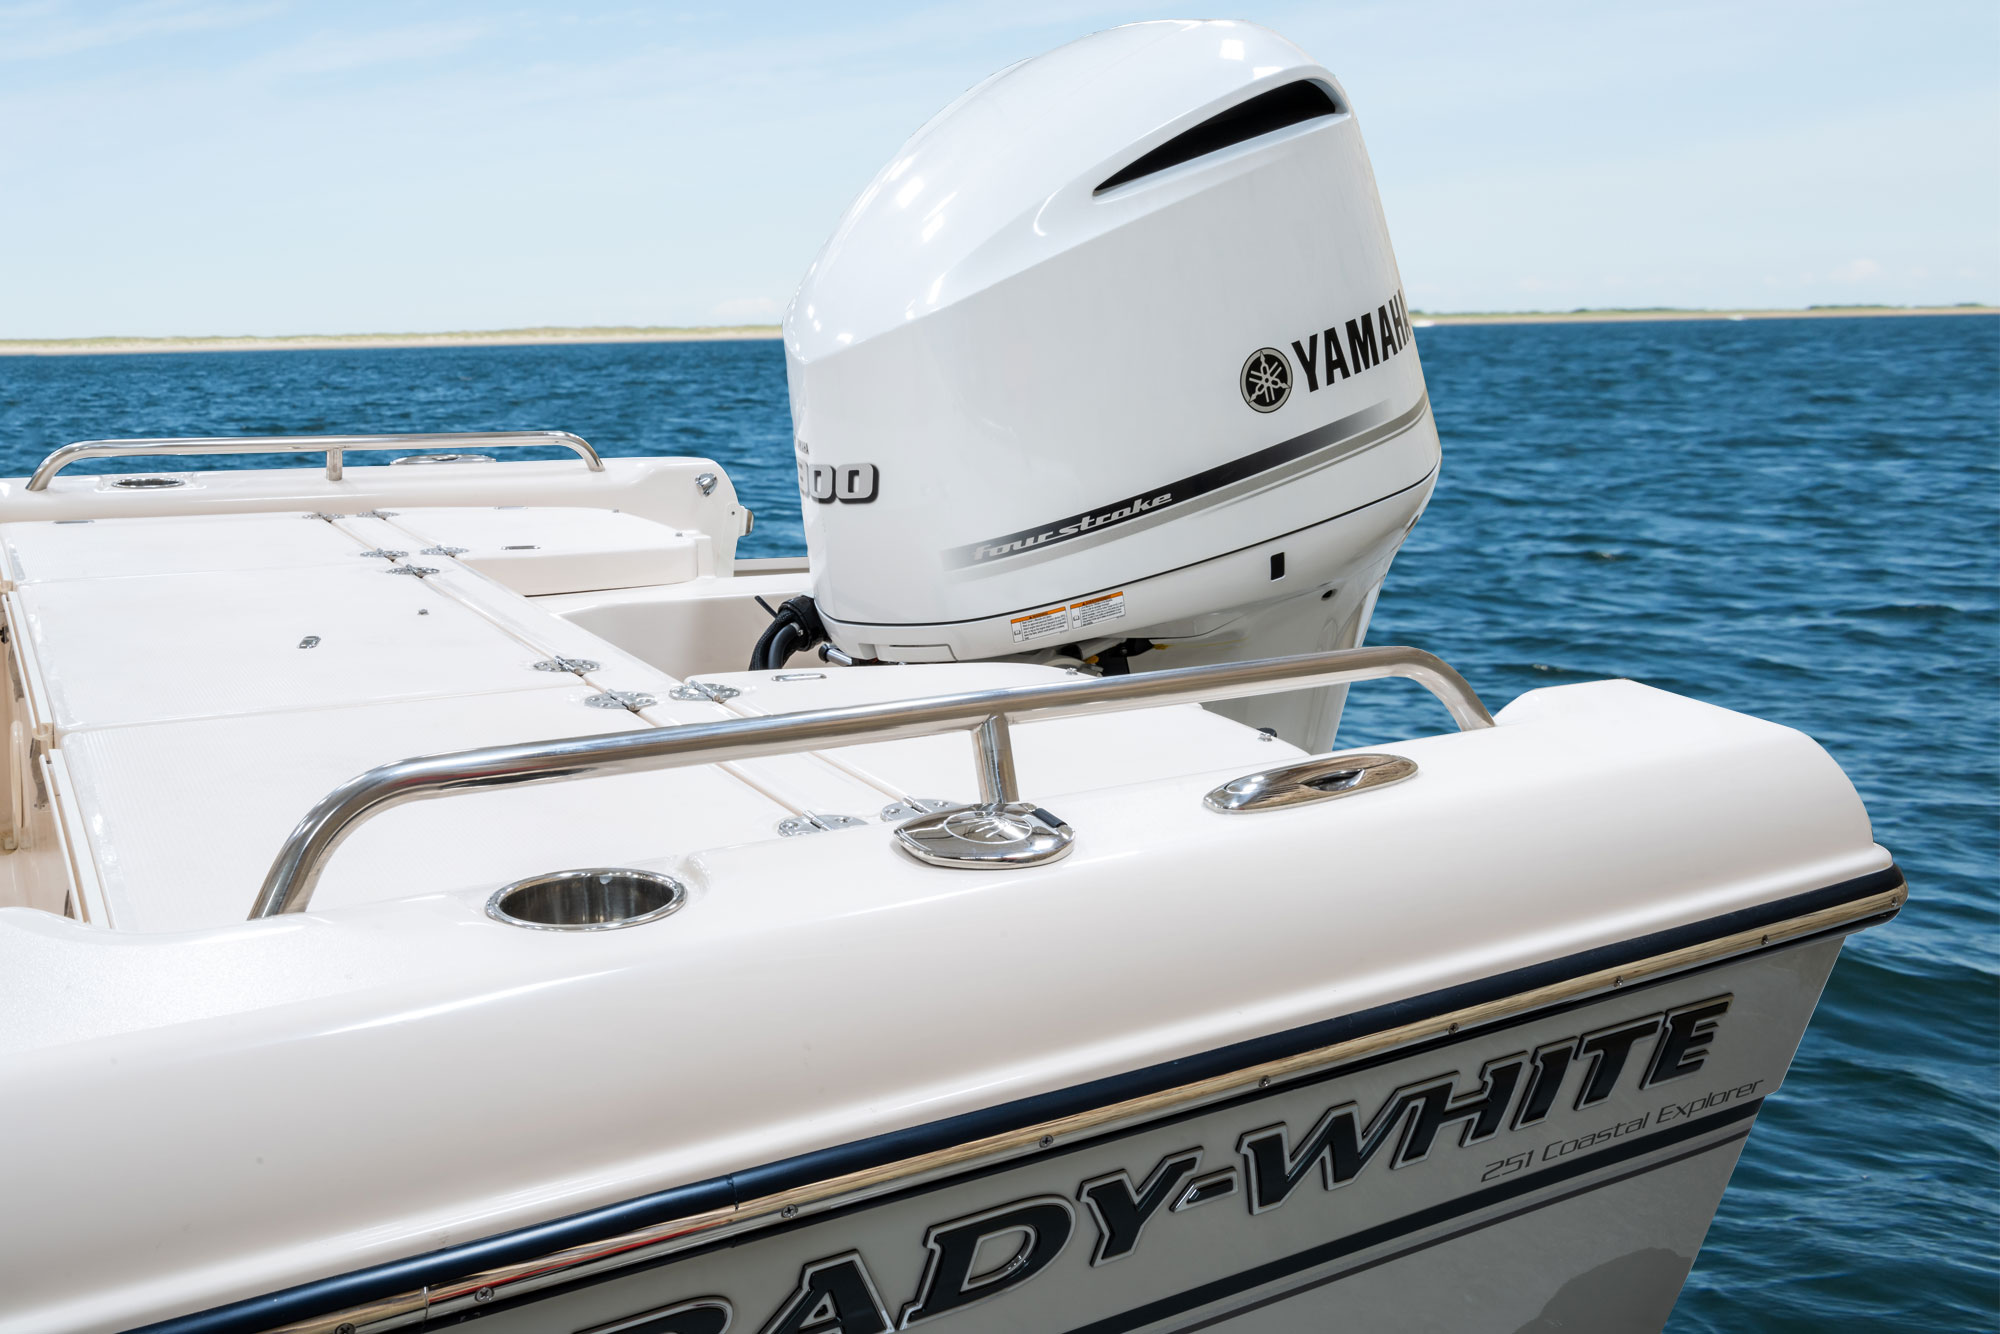 Grady-White 251 CE, 25-foot coastal explorer engine Yamaha factory-painted engines(s), pearlescent white (300 HP only)